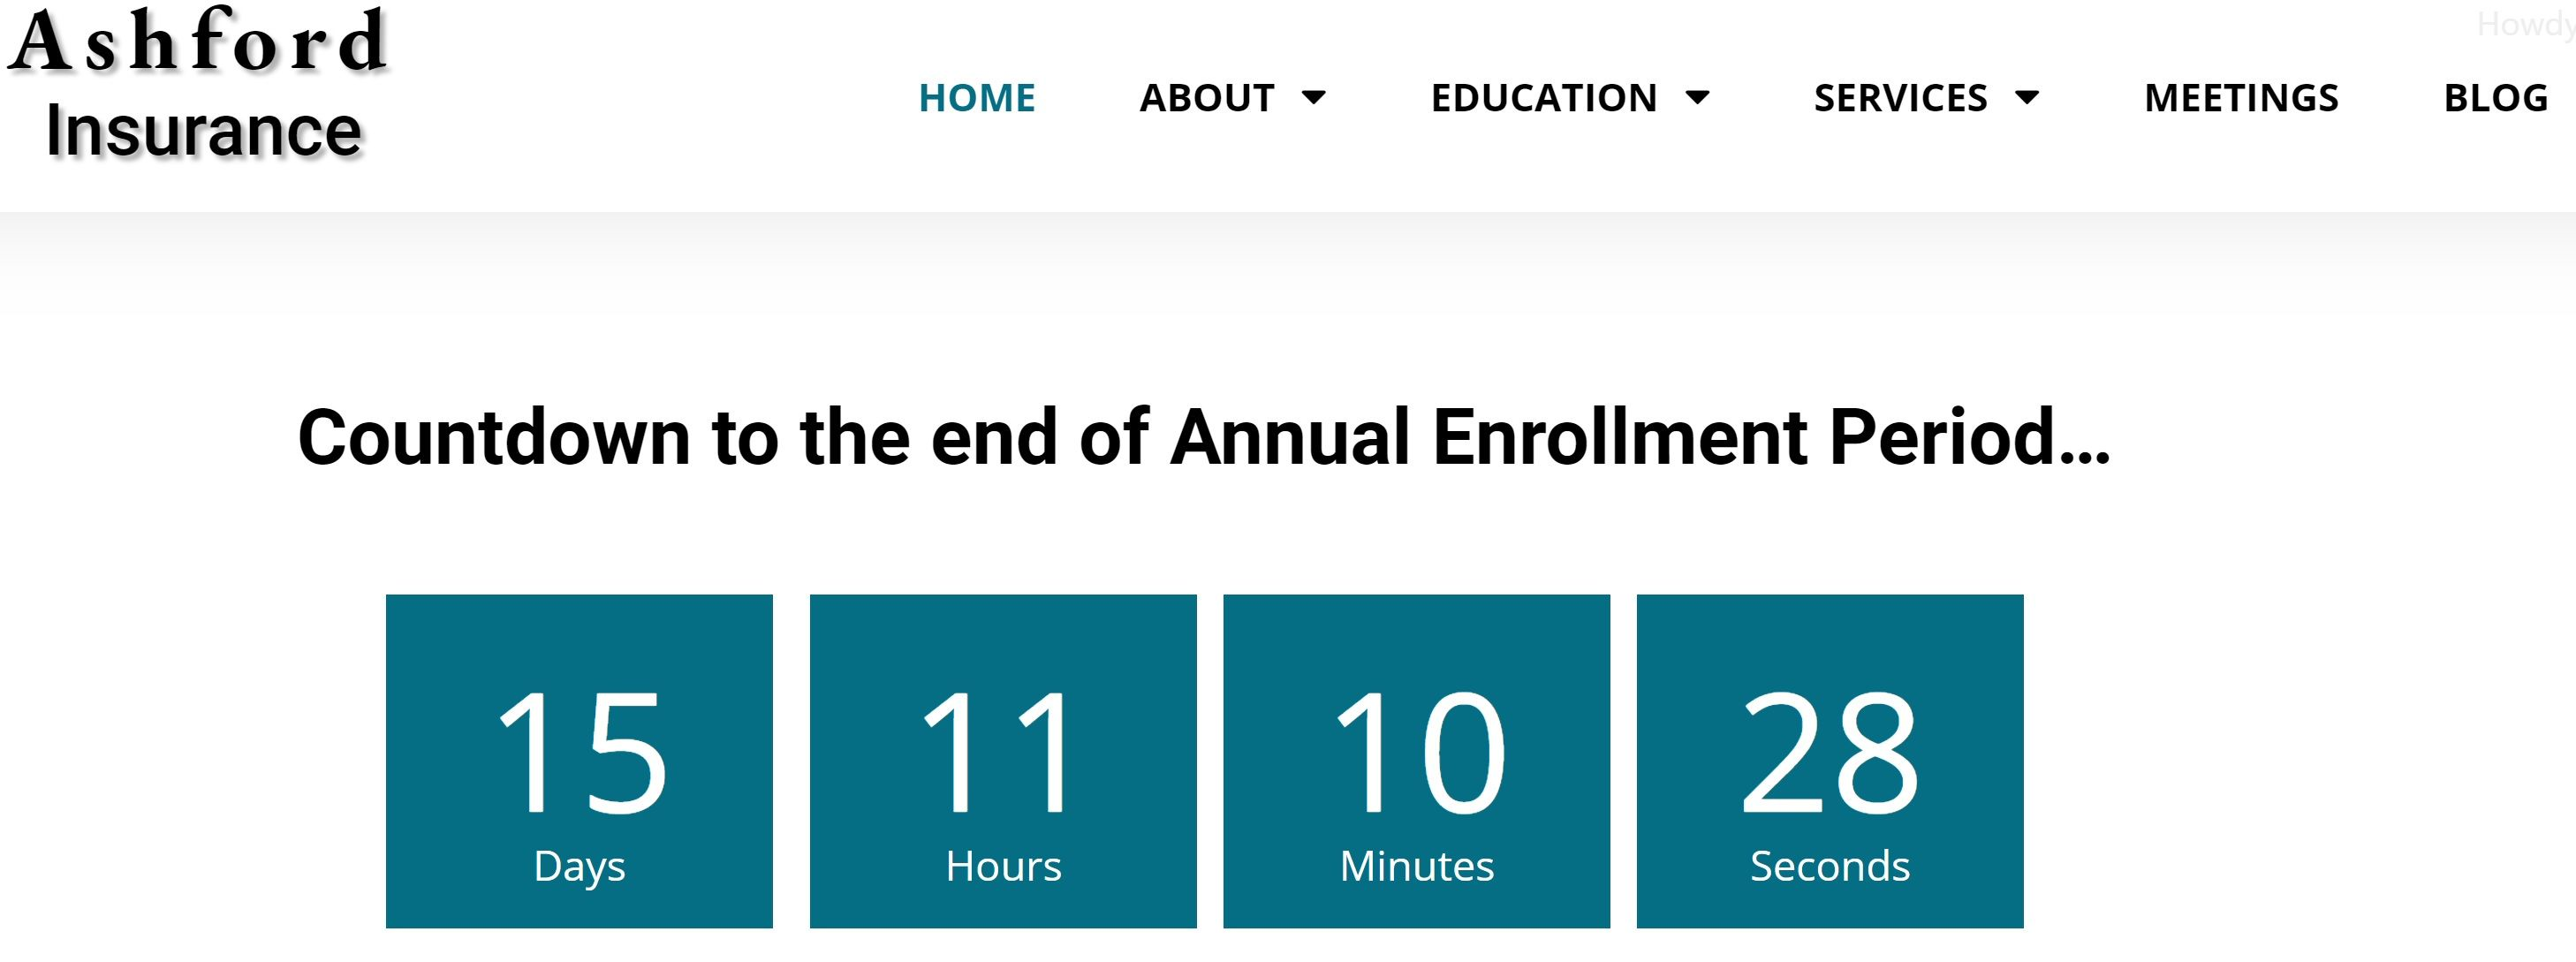 Time For The Medicare Annual Enrollment Period Is Running Out